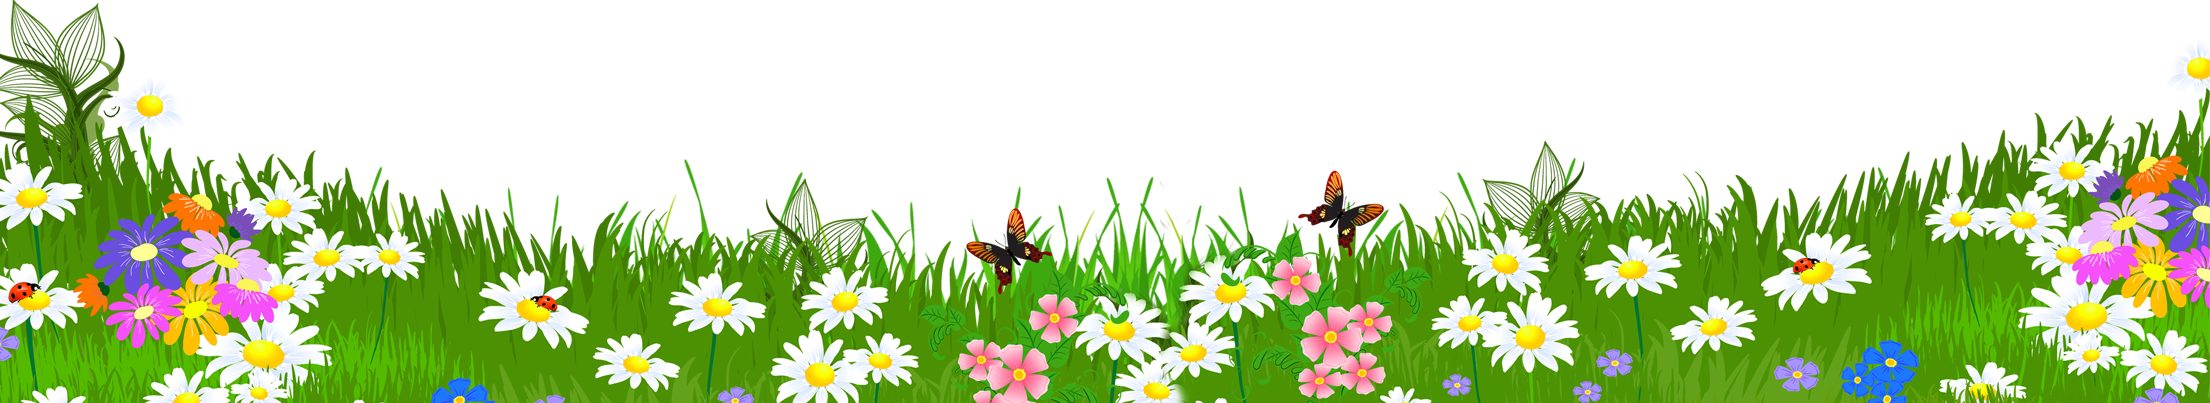 Grass Ground with Flowers PNG Clipart.